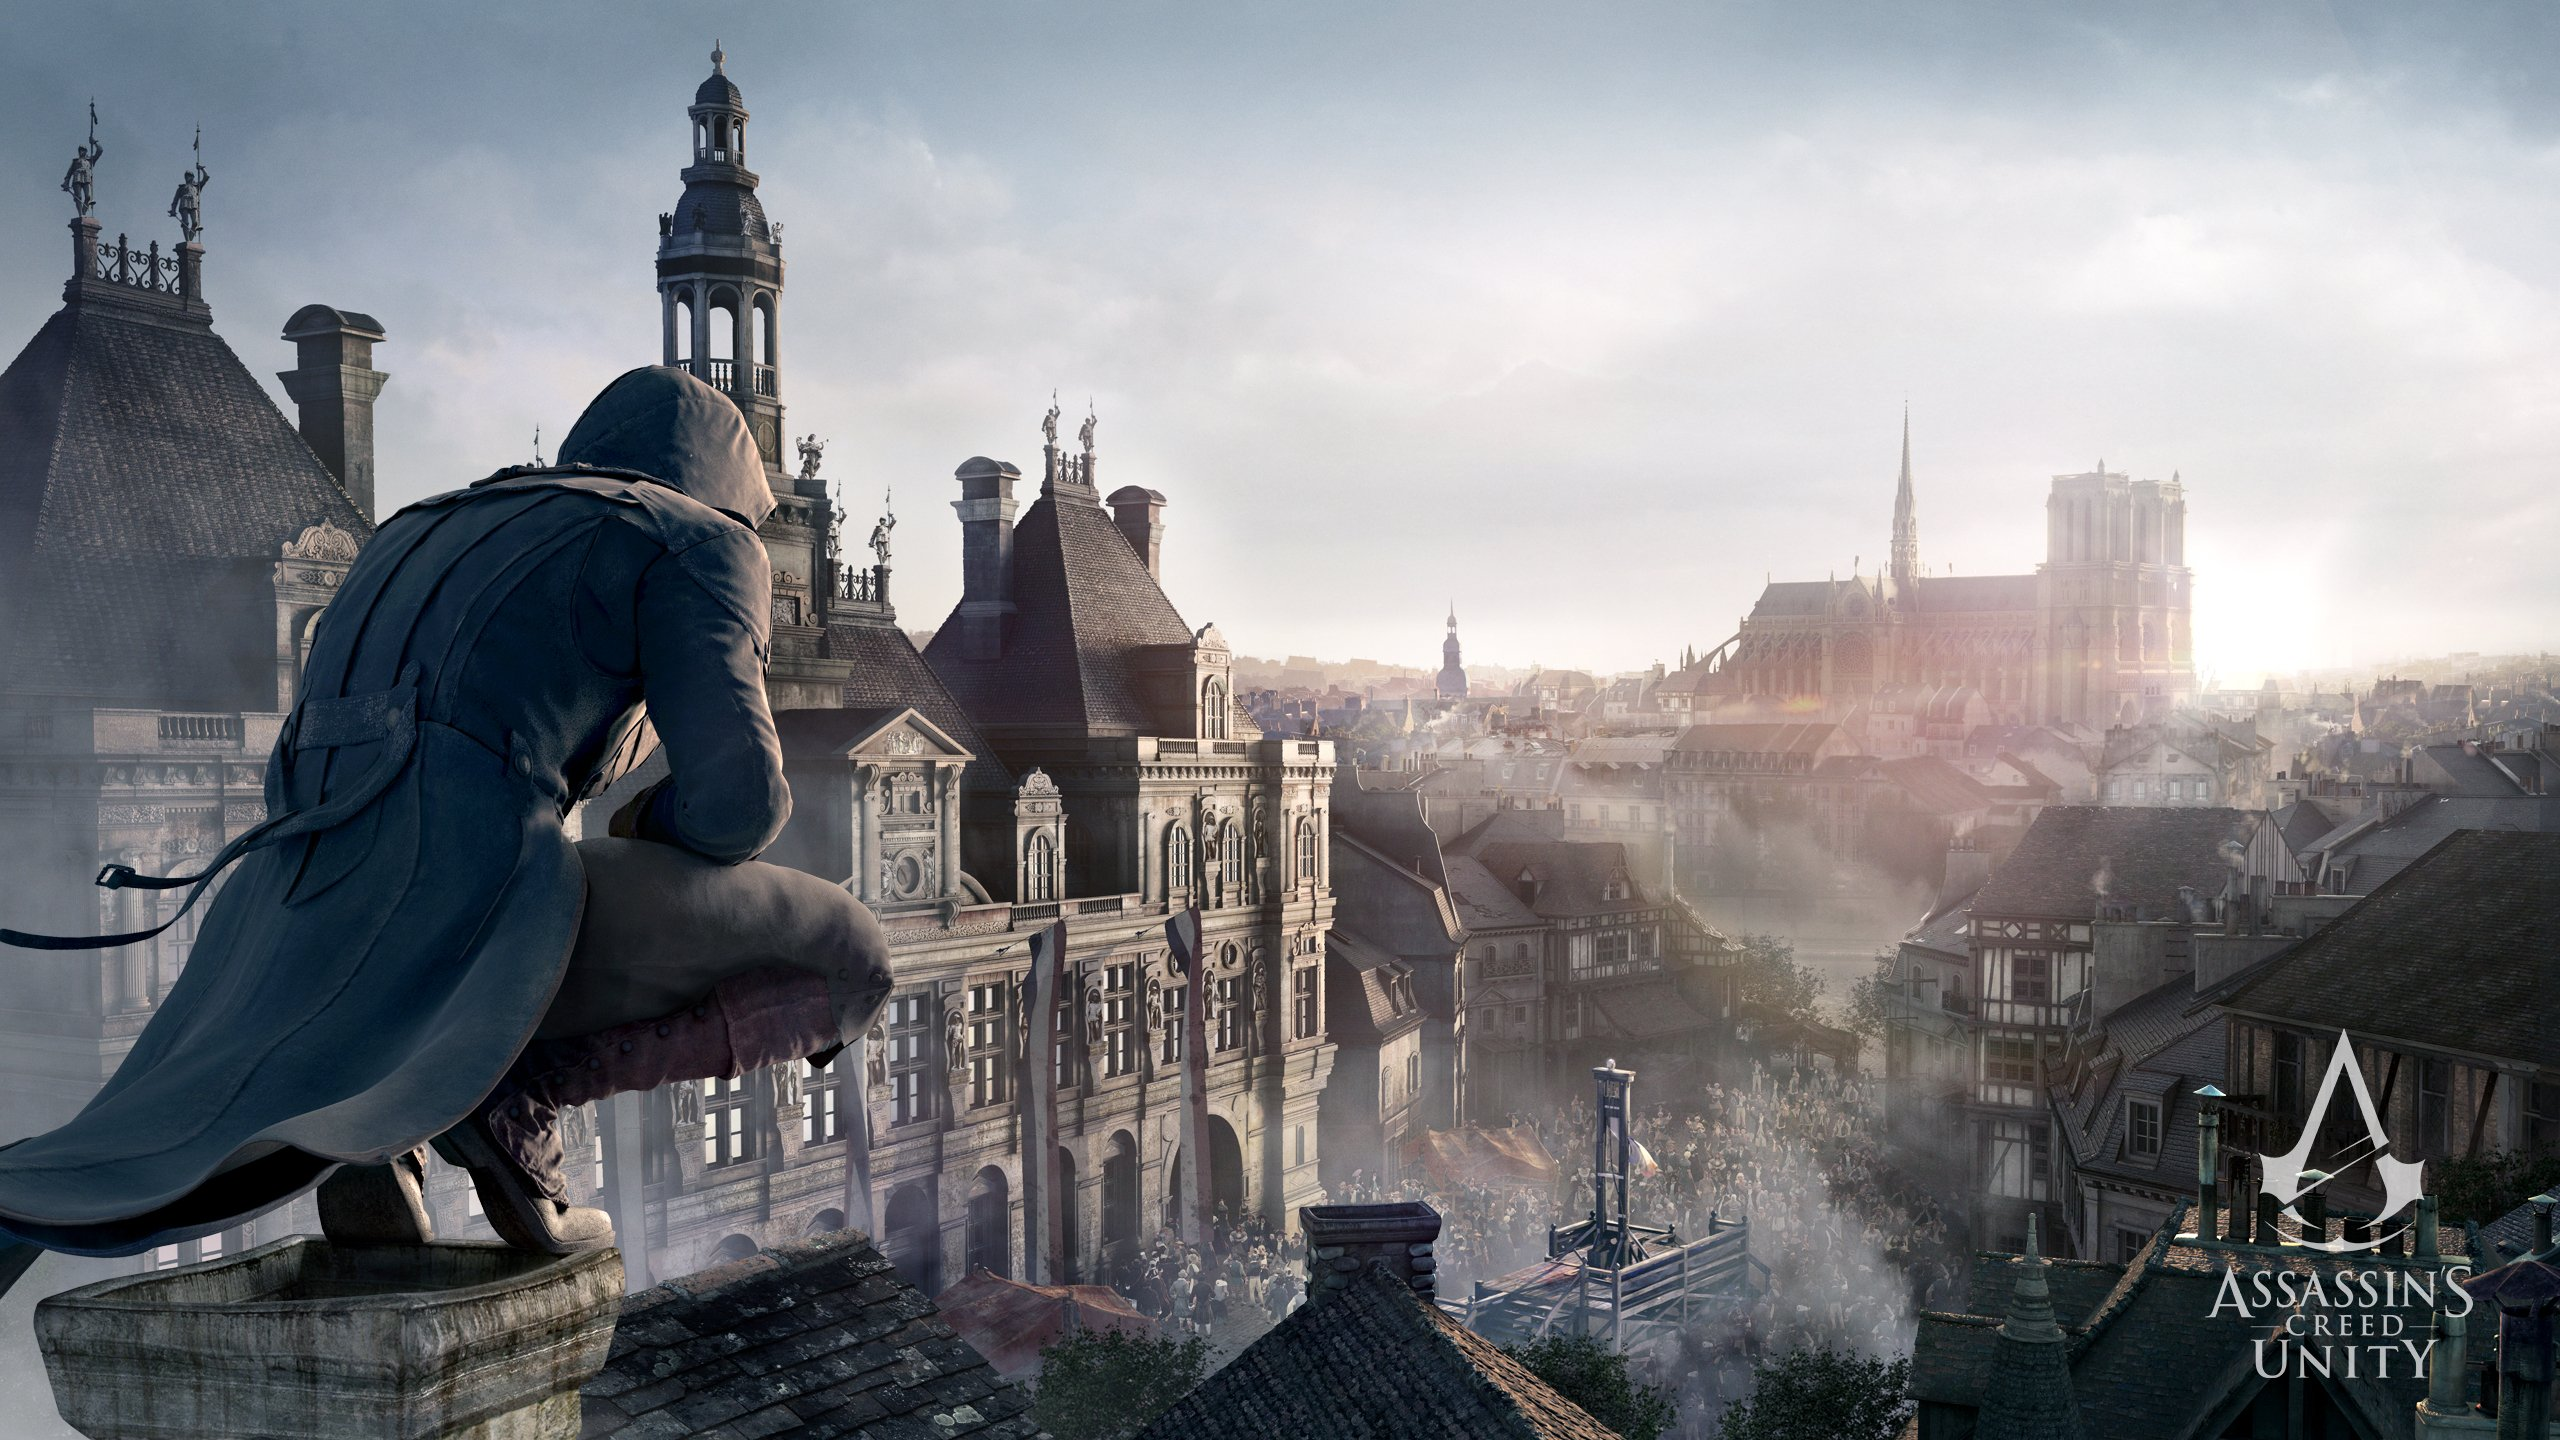 153 Assassins Creed Unity HD Wallpapers Backgrounds 2560x1440